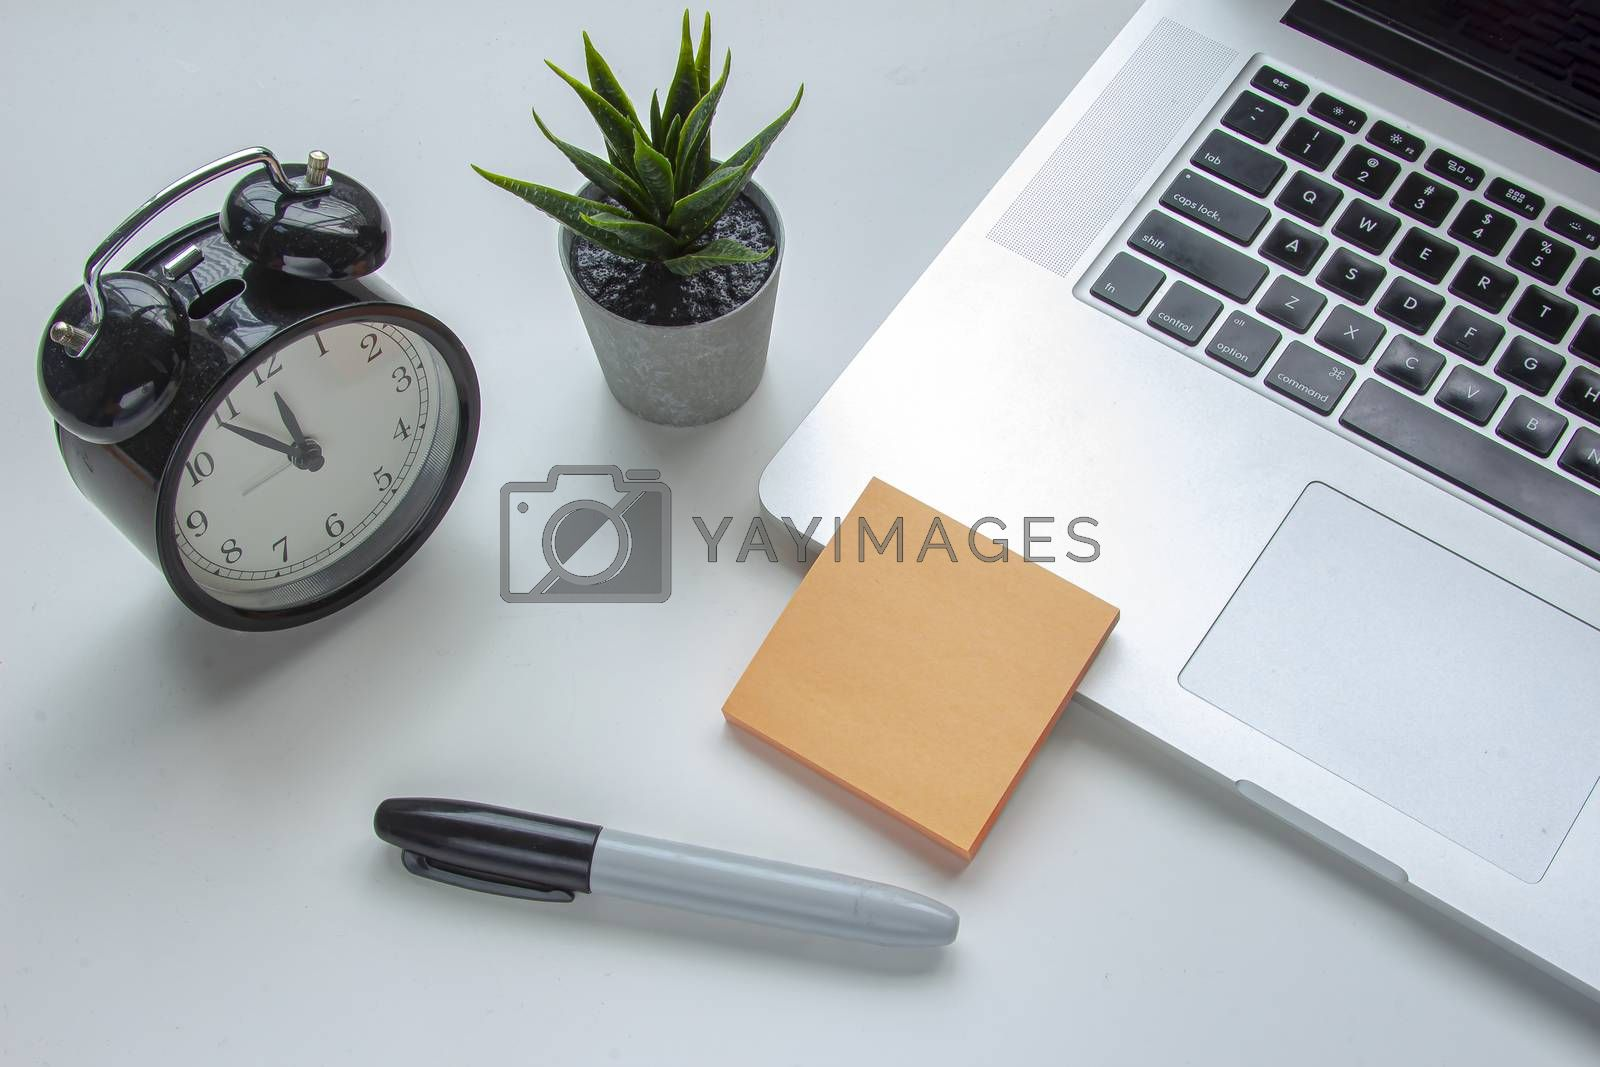 A note an a marker next to a laptop keyboard with a clock and a plant on a white table